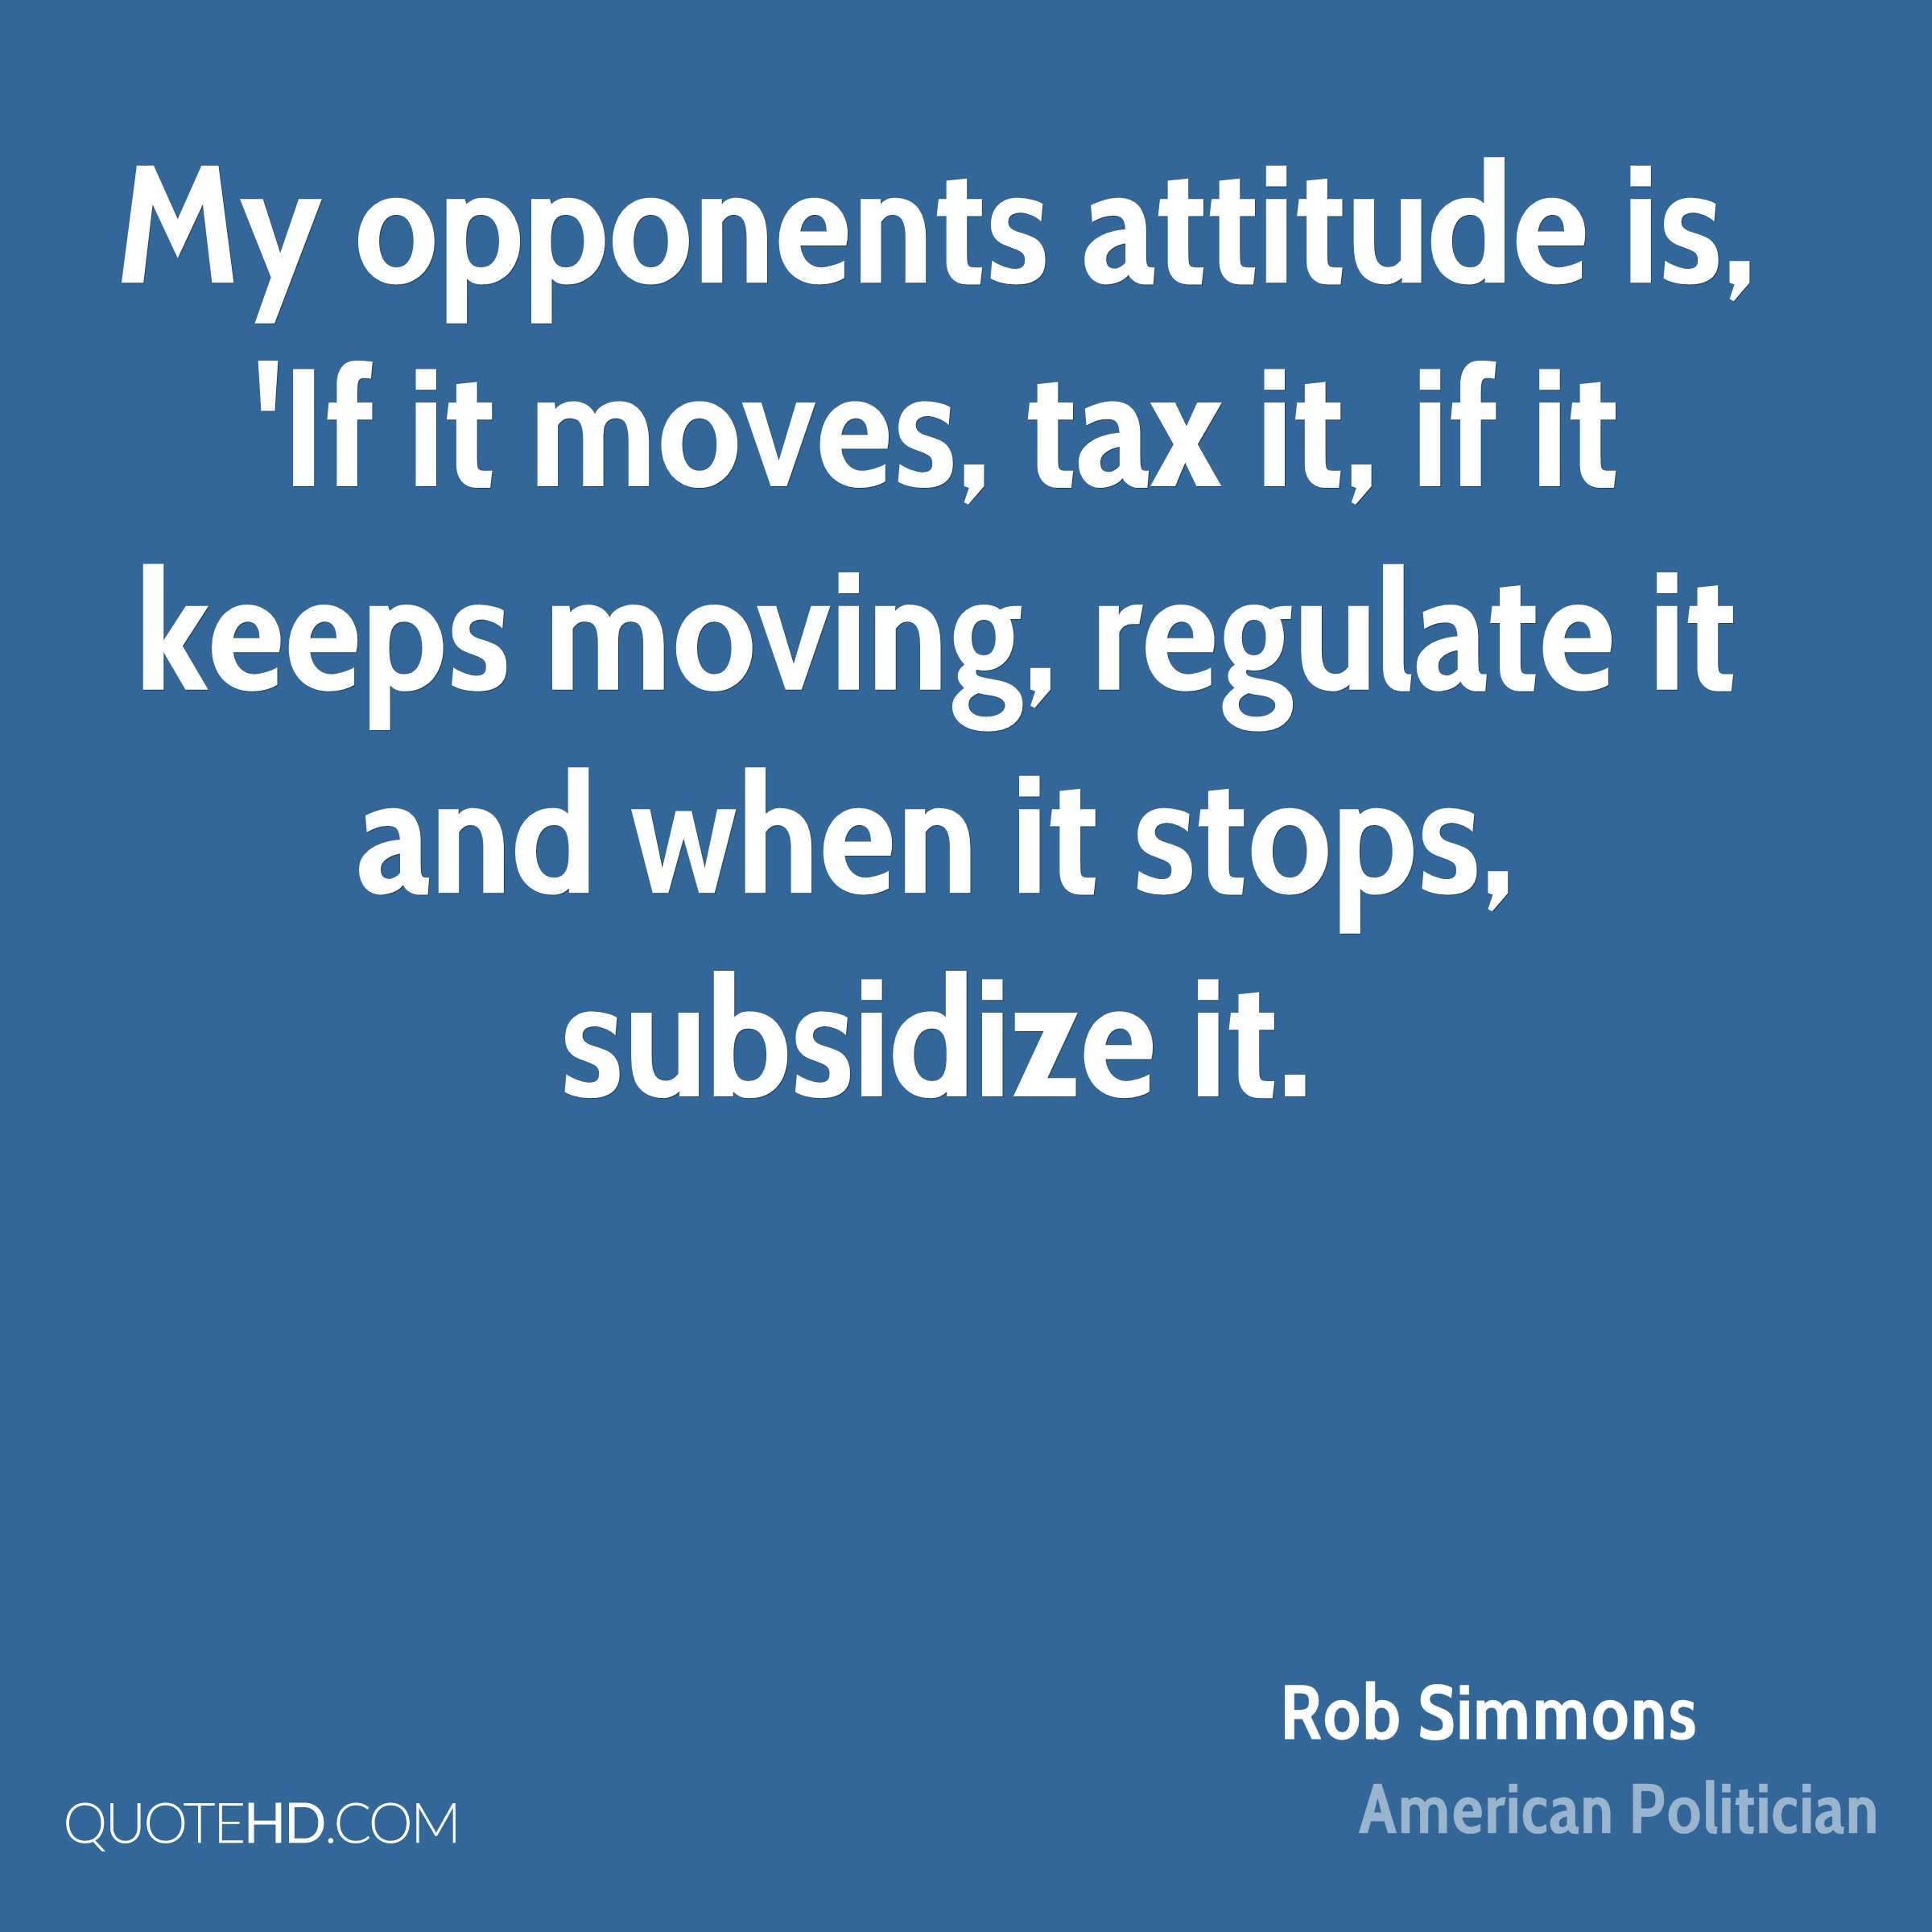 My opponents attitude is, 'If it moves, tax it, if it keeps moving, regulate it and when it stops, subsidize it.